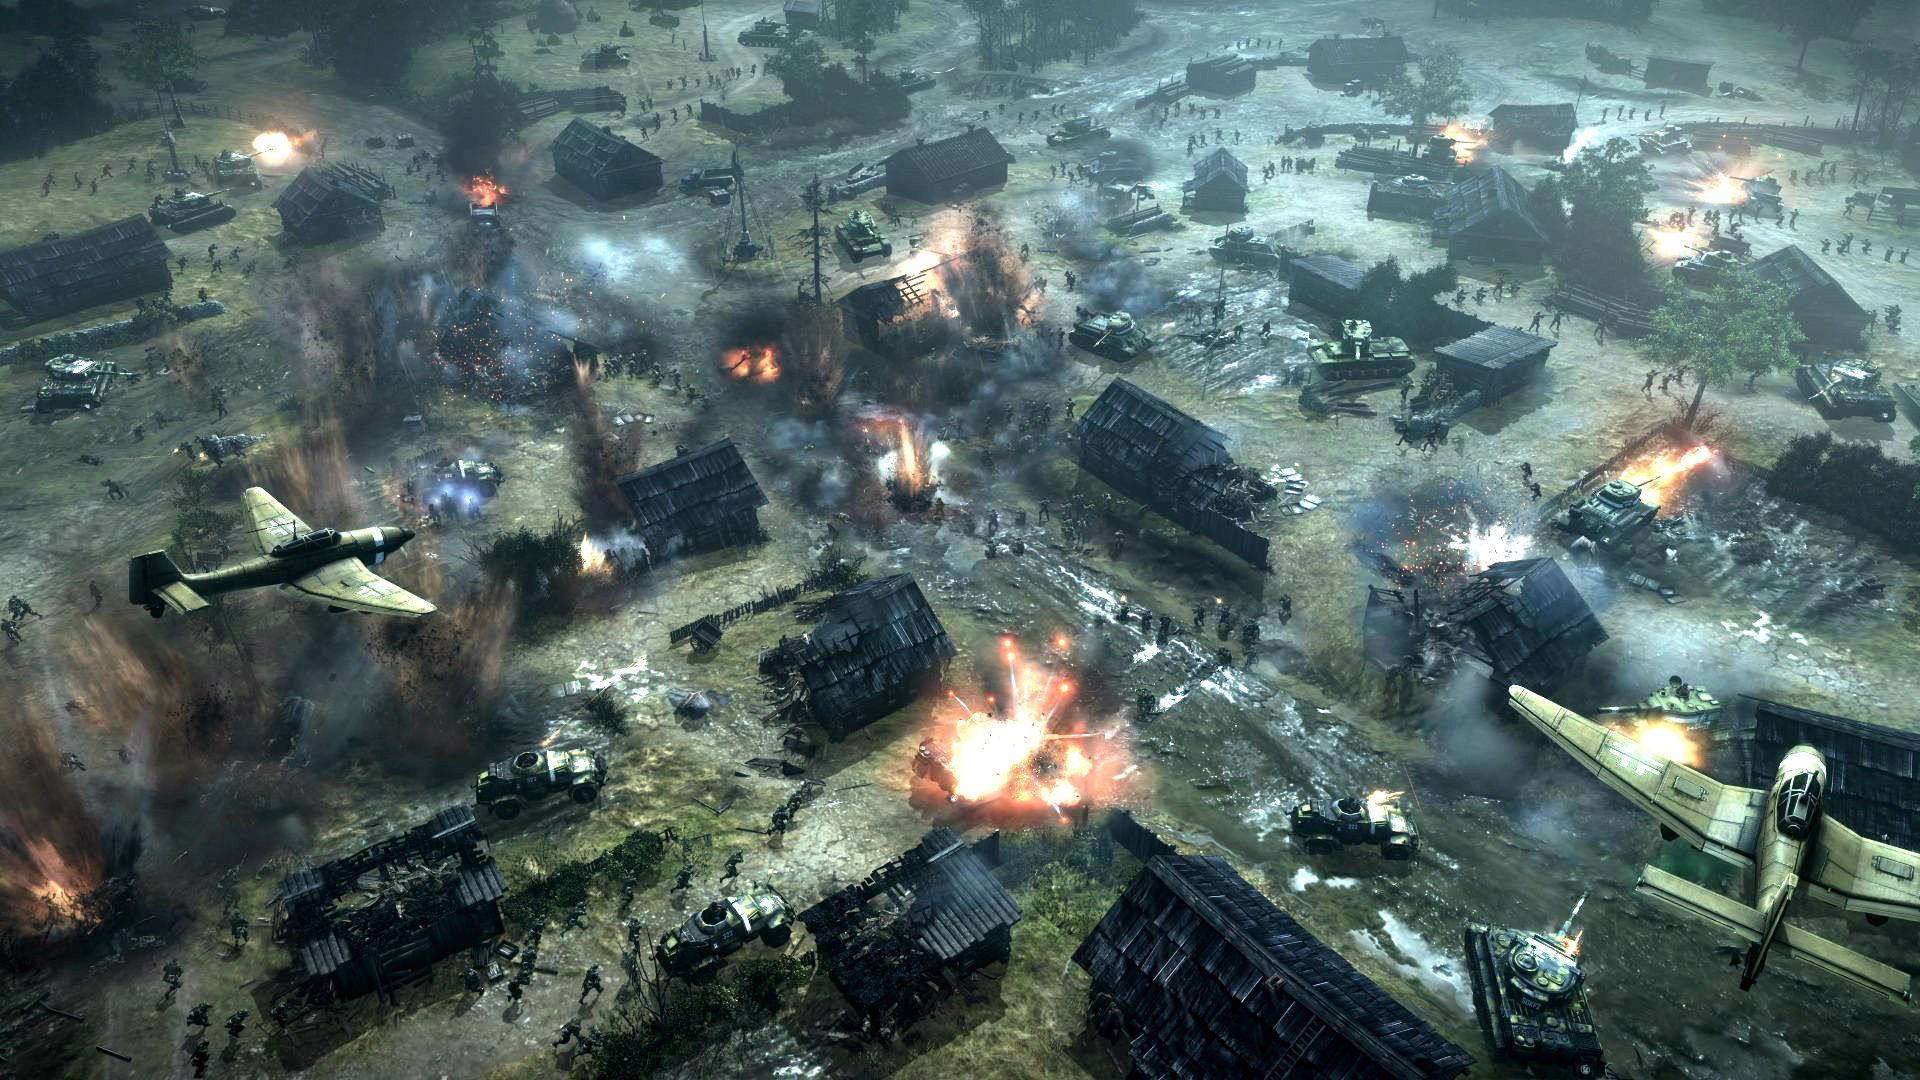 company of heroes images gamespot | hd wallpapers | pinterest | hd